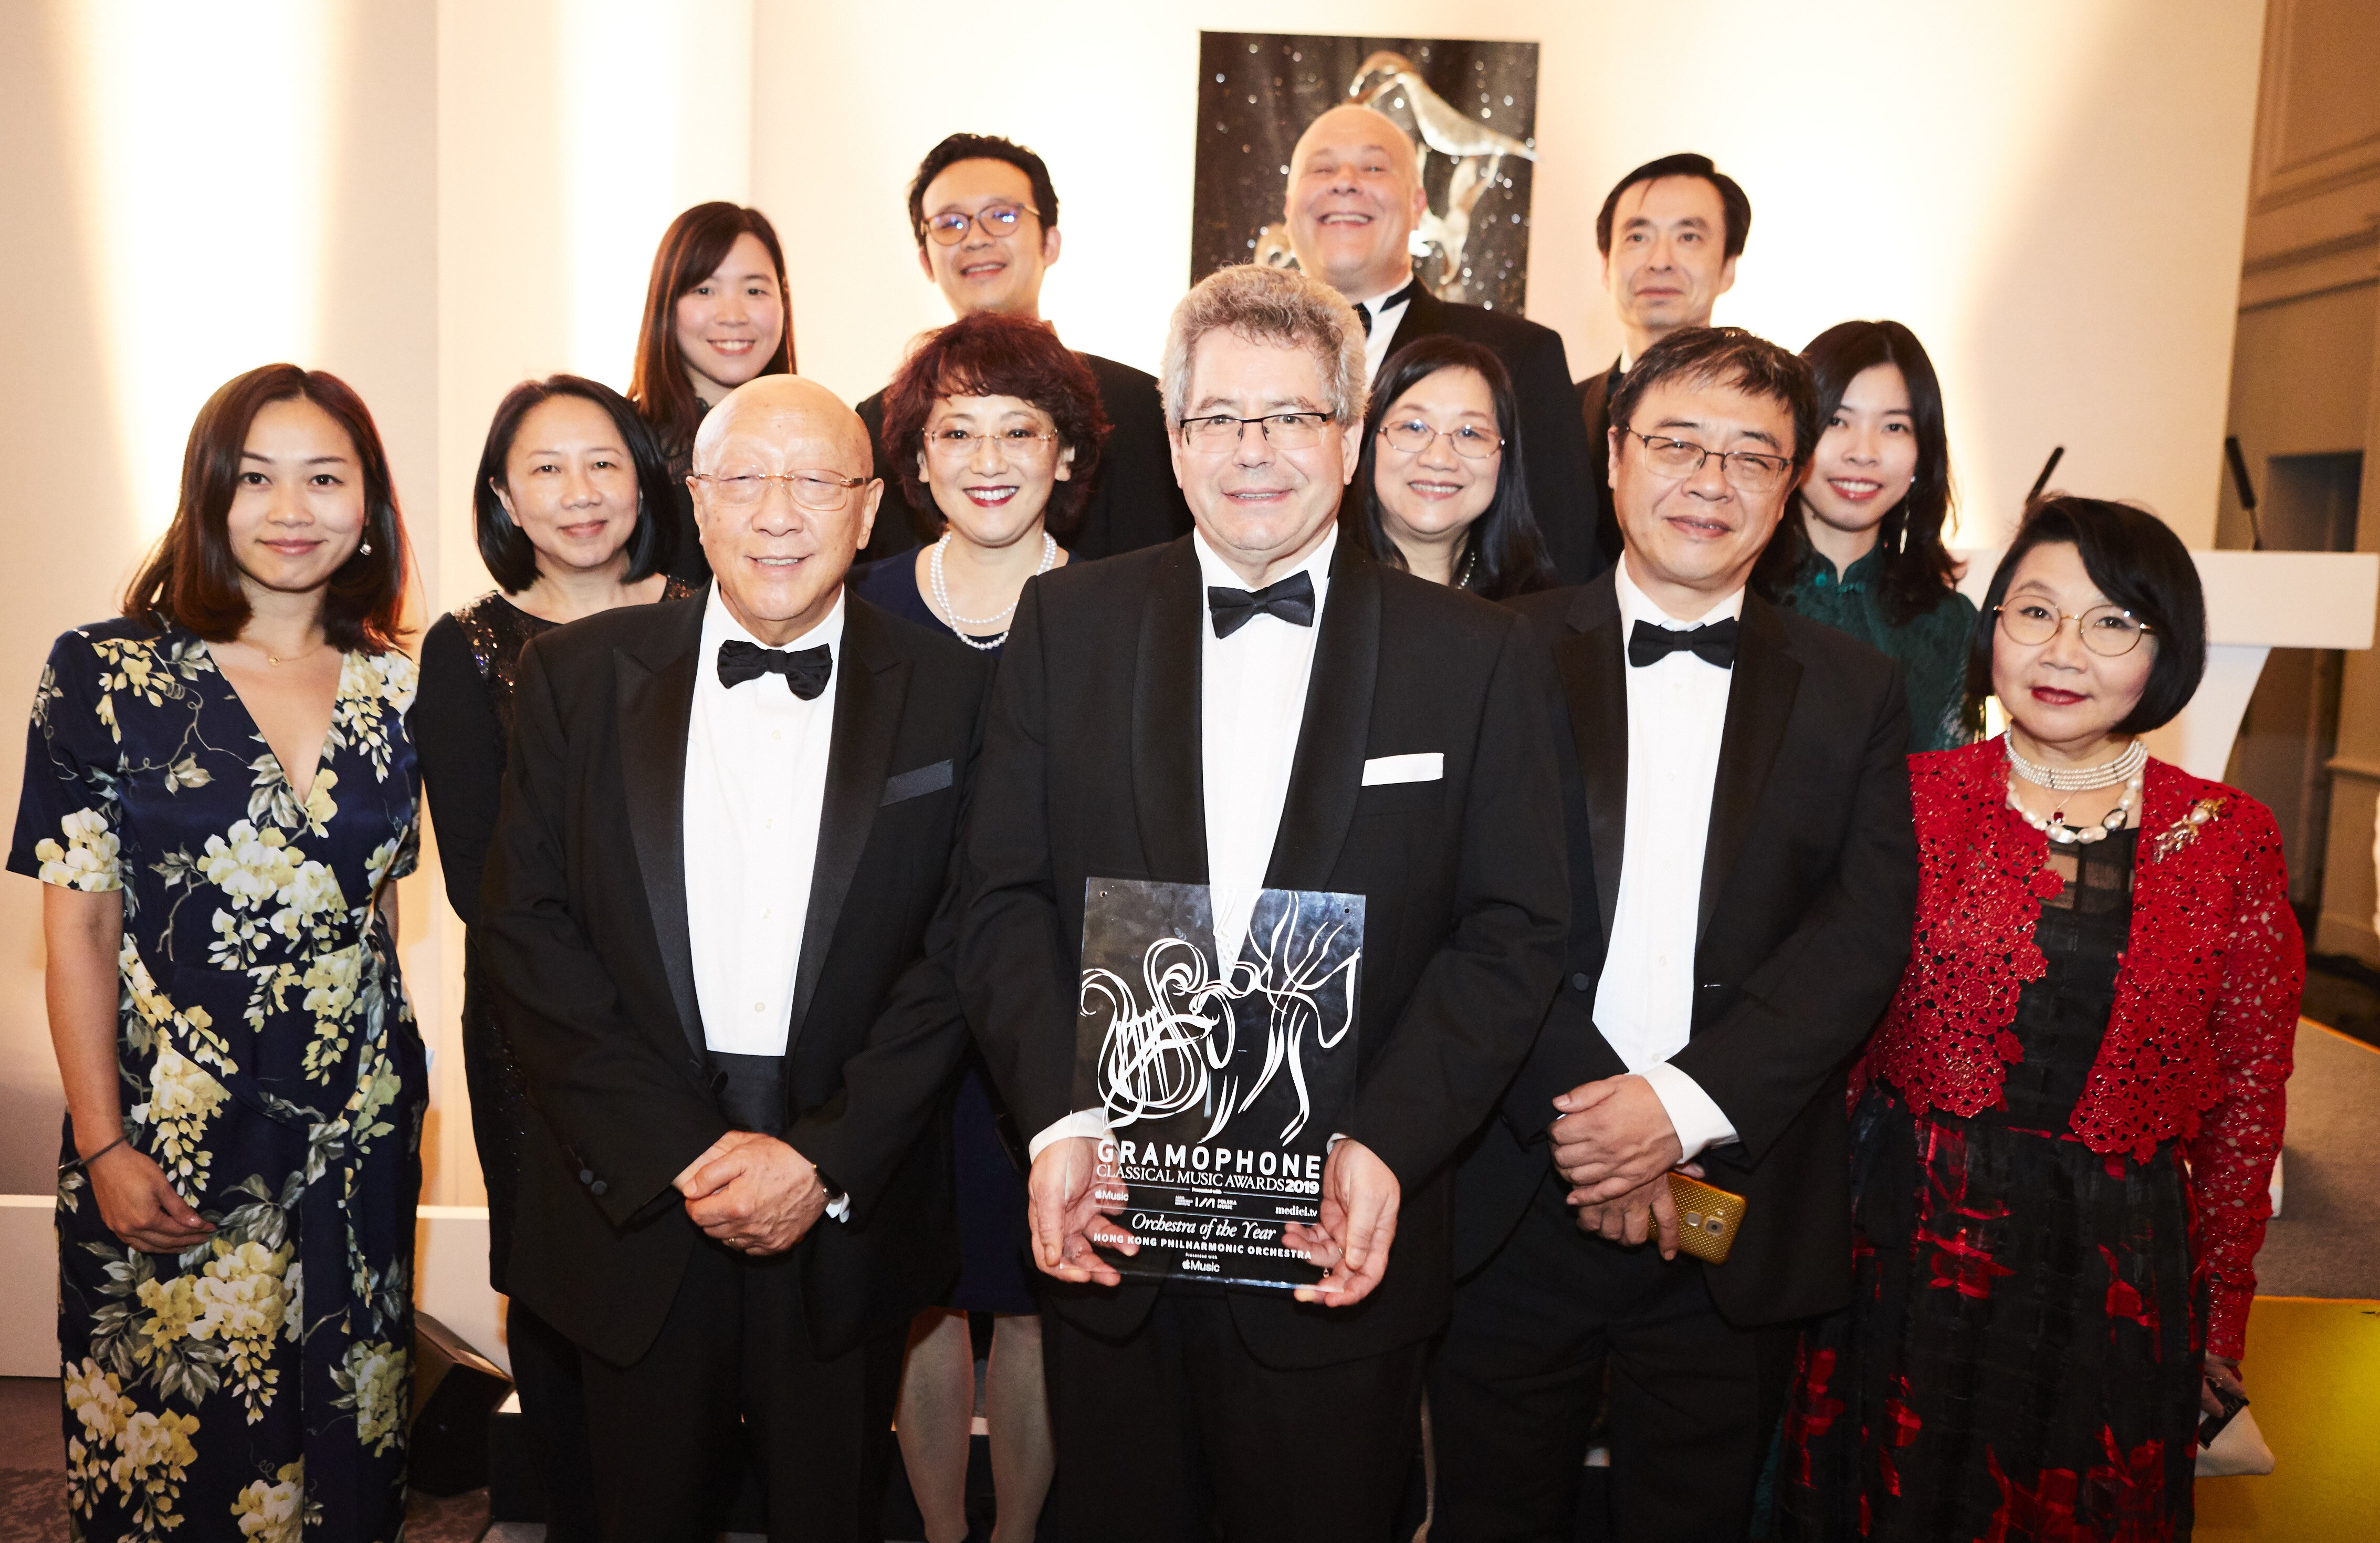 2019 Gramophone Classical Music Awards ceremony